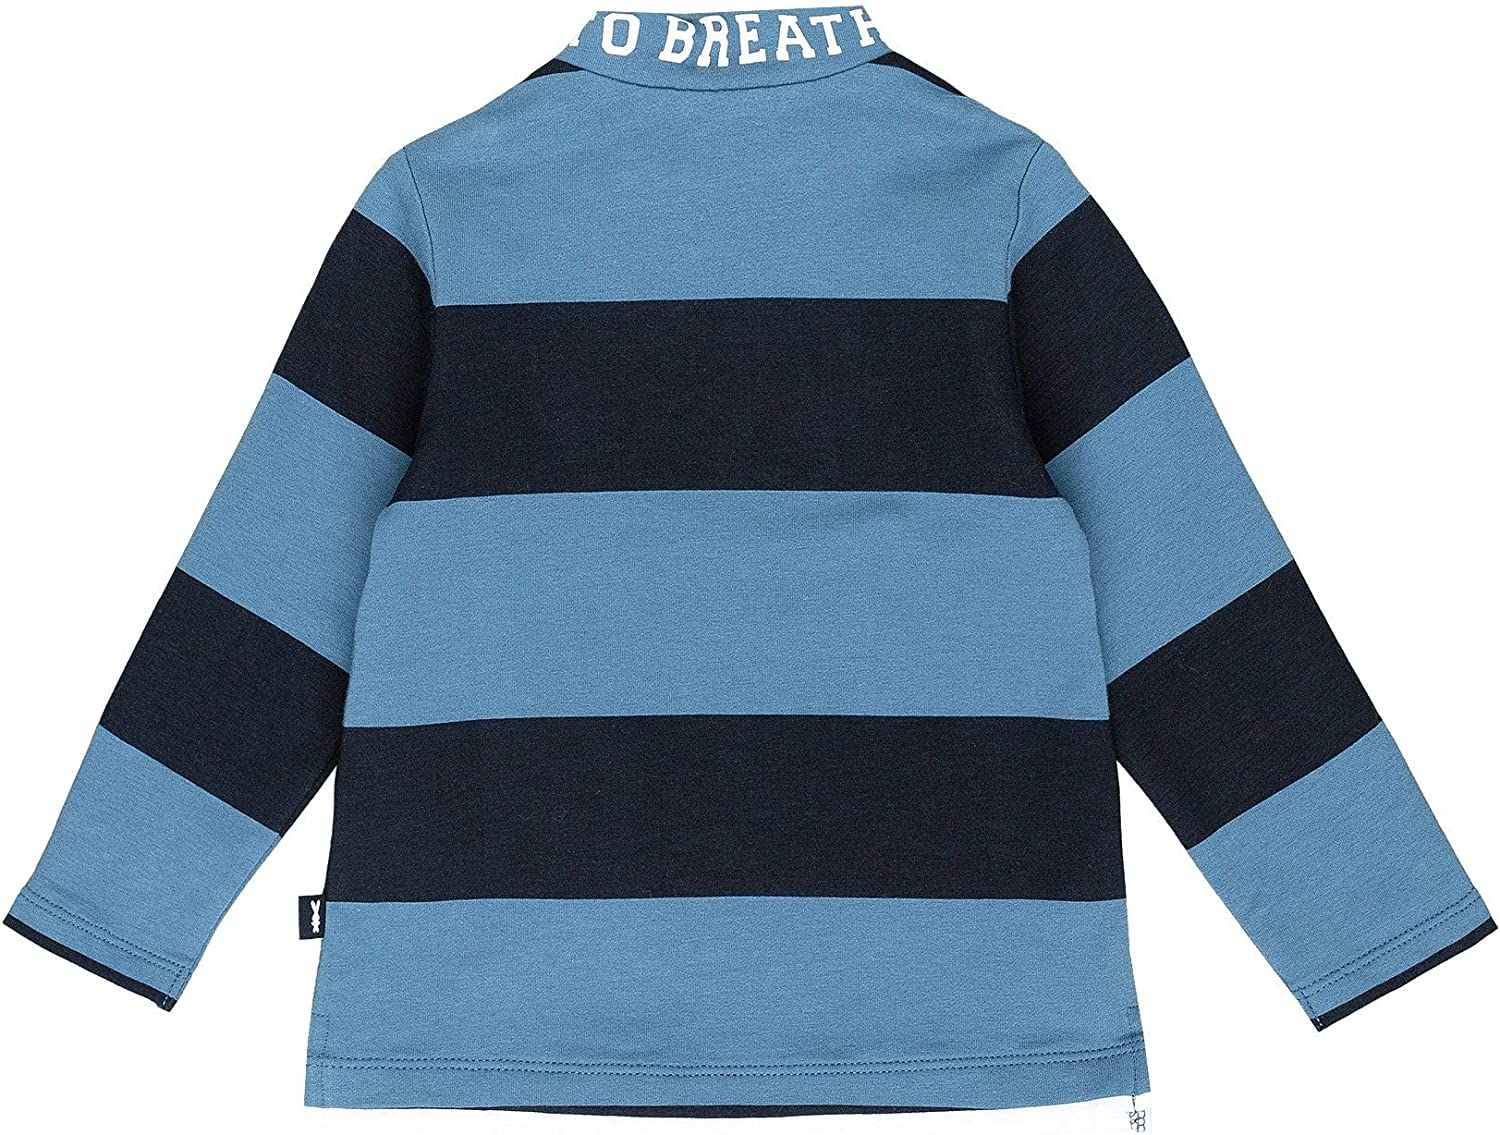 Regular Fit Colour Navy Blue GULLIVER Baby Boy Long Sleeve Top Polo Shirt Casual Patch Cotton Soft Round Polo-Neck Stripe Print Popper Button for 9-24 Months